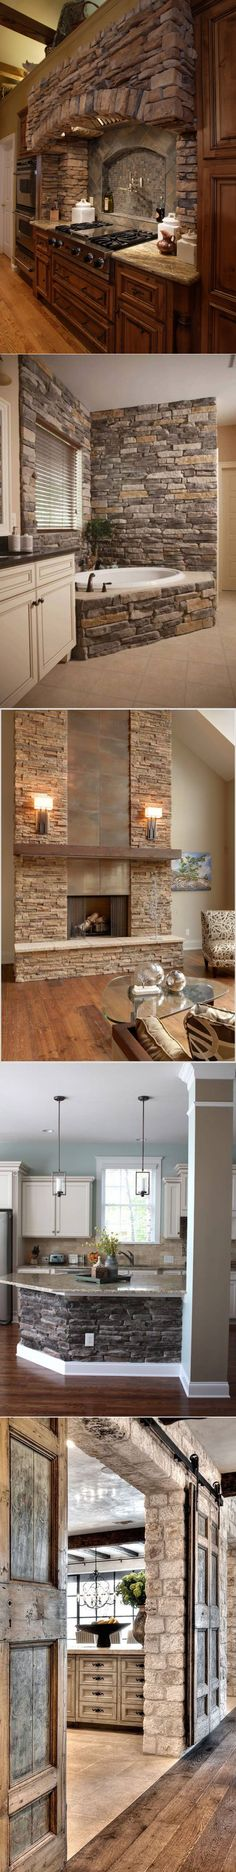 33 Best Interior Stone Wall Ideas and Designs for 2018 Best Interior, Curtains, Stone, Wall Ideas, Kitchen, Design, Home Decor, Interior Stone Walls, Projects